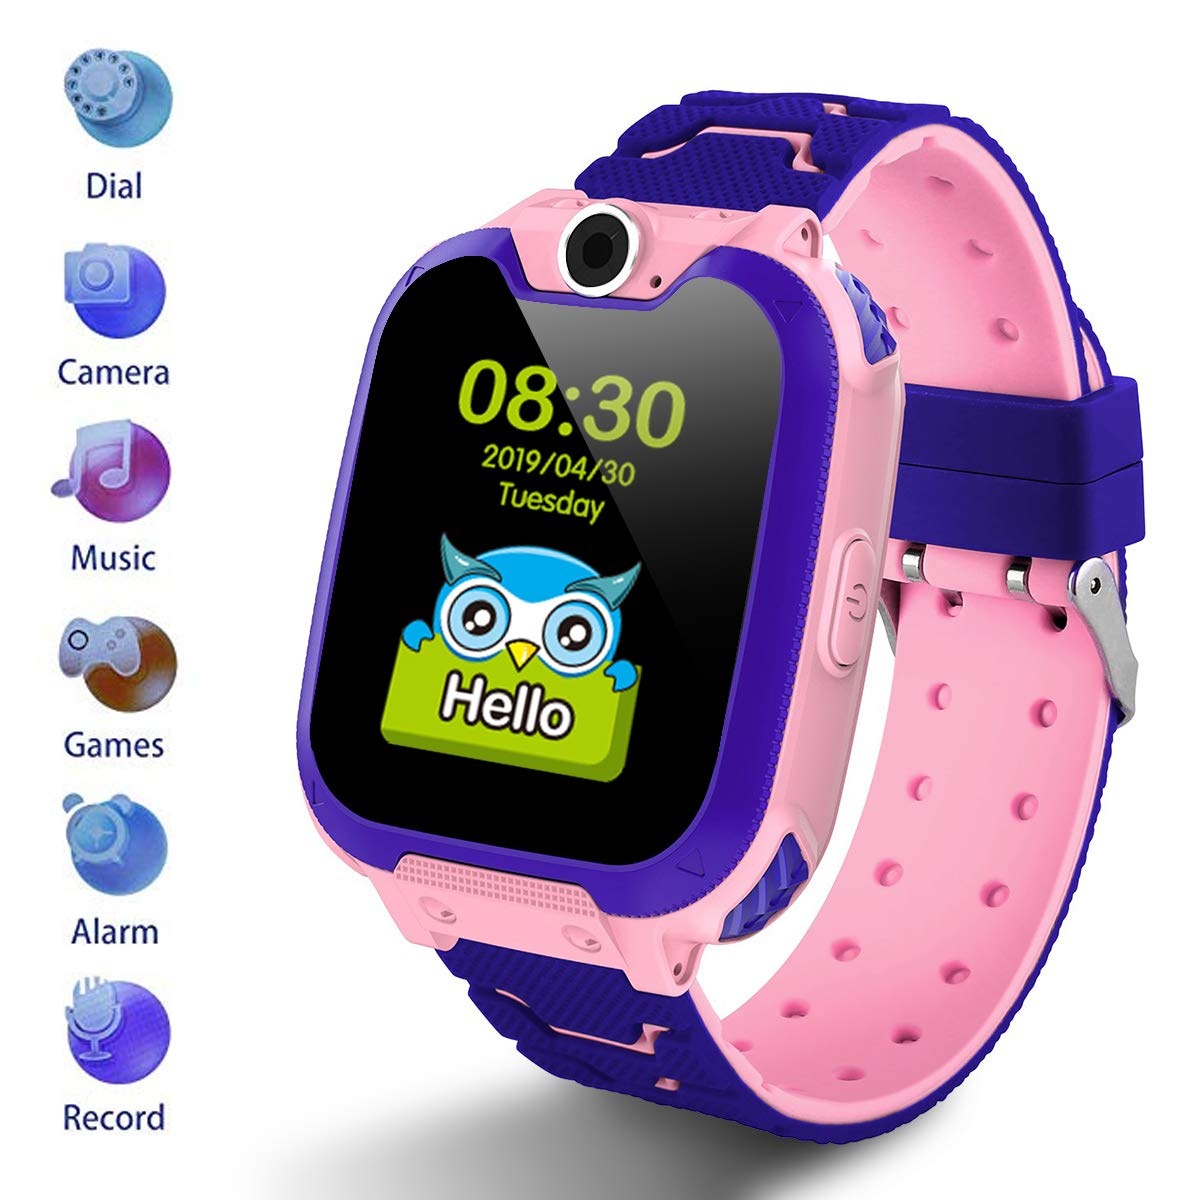 Kids Smartwatch [SD Card Included],1.54 inch Colorful Touch Screen Smartwatch for Children with Quick Dial, Camera and Music Player,Calculator and ...